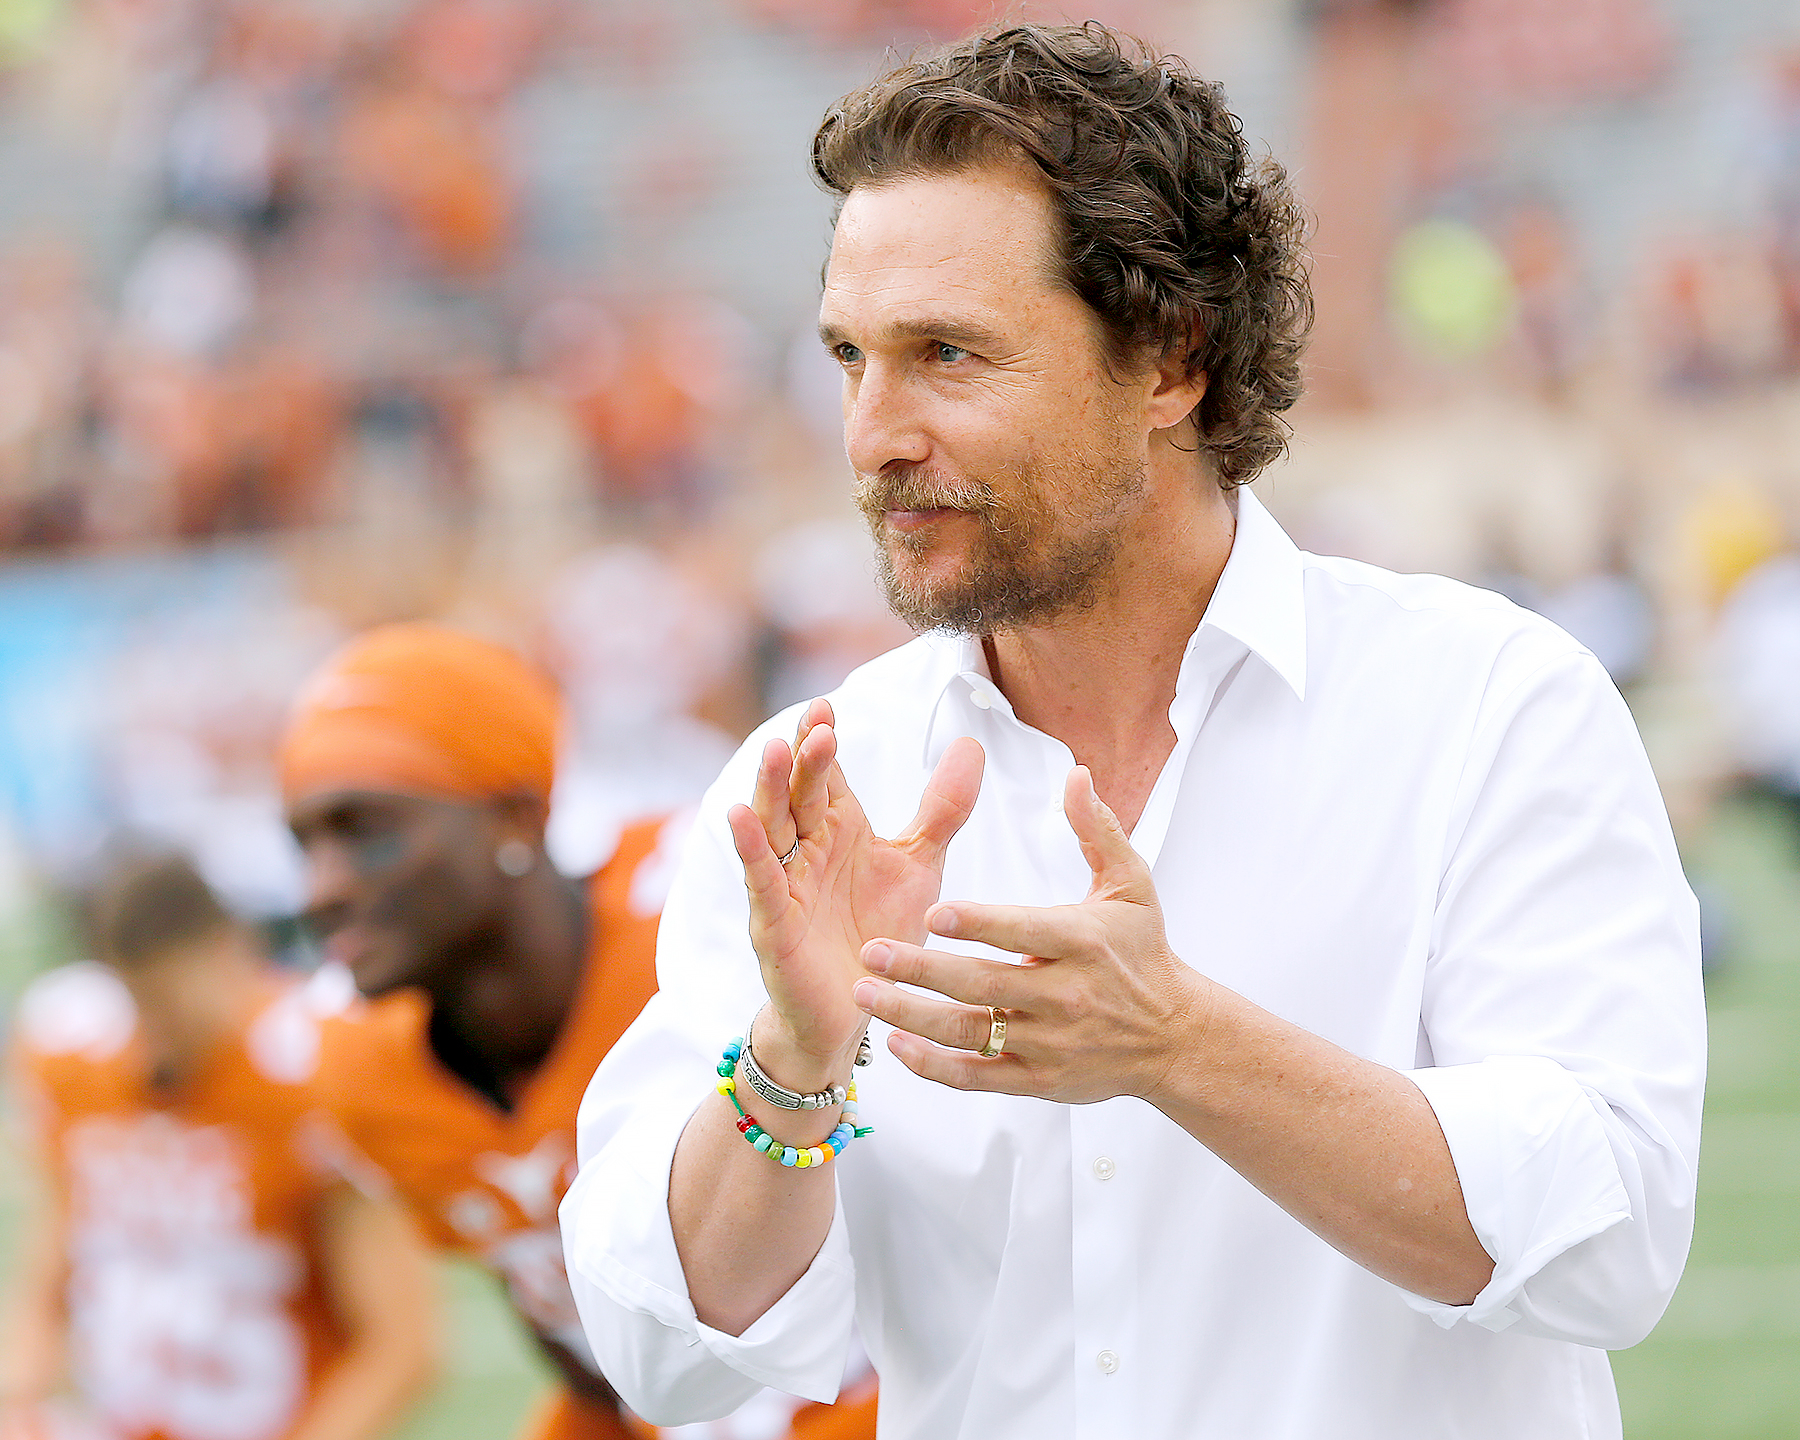 Matthew McConaughey encourages the Texas Longhorns before the game against the TCU Horned Frogs at Darrell K Royal -Texas Memorial Stadium on November 25, 2016 in Austin, Texas.